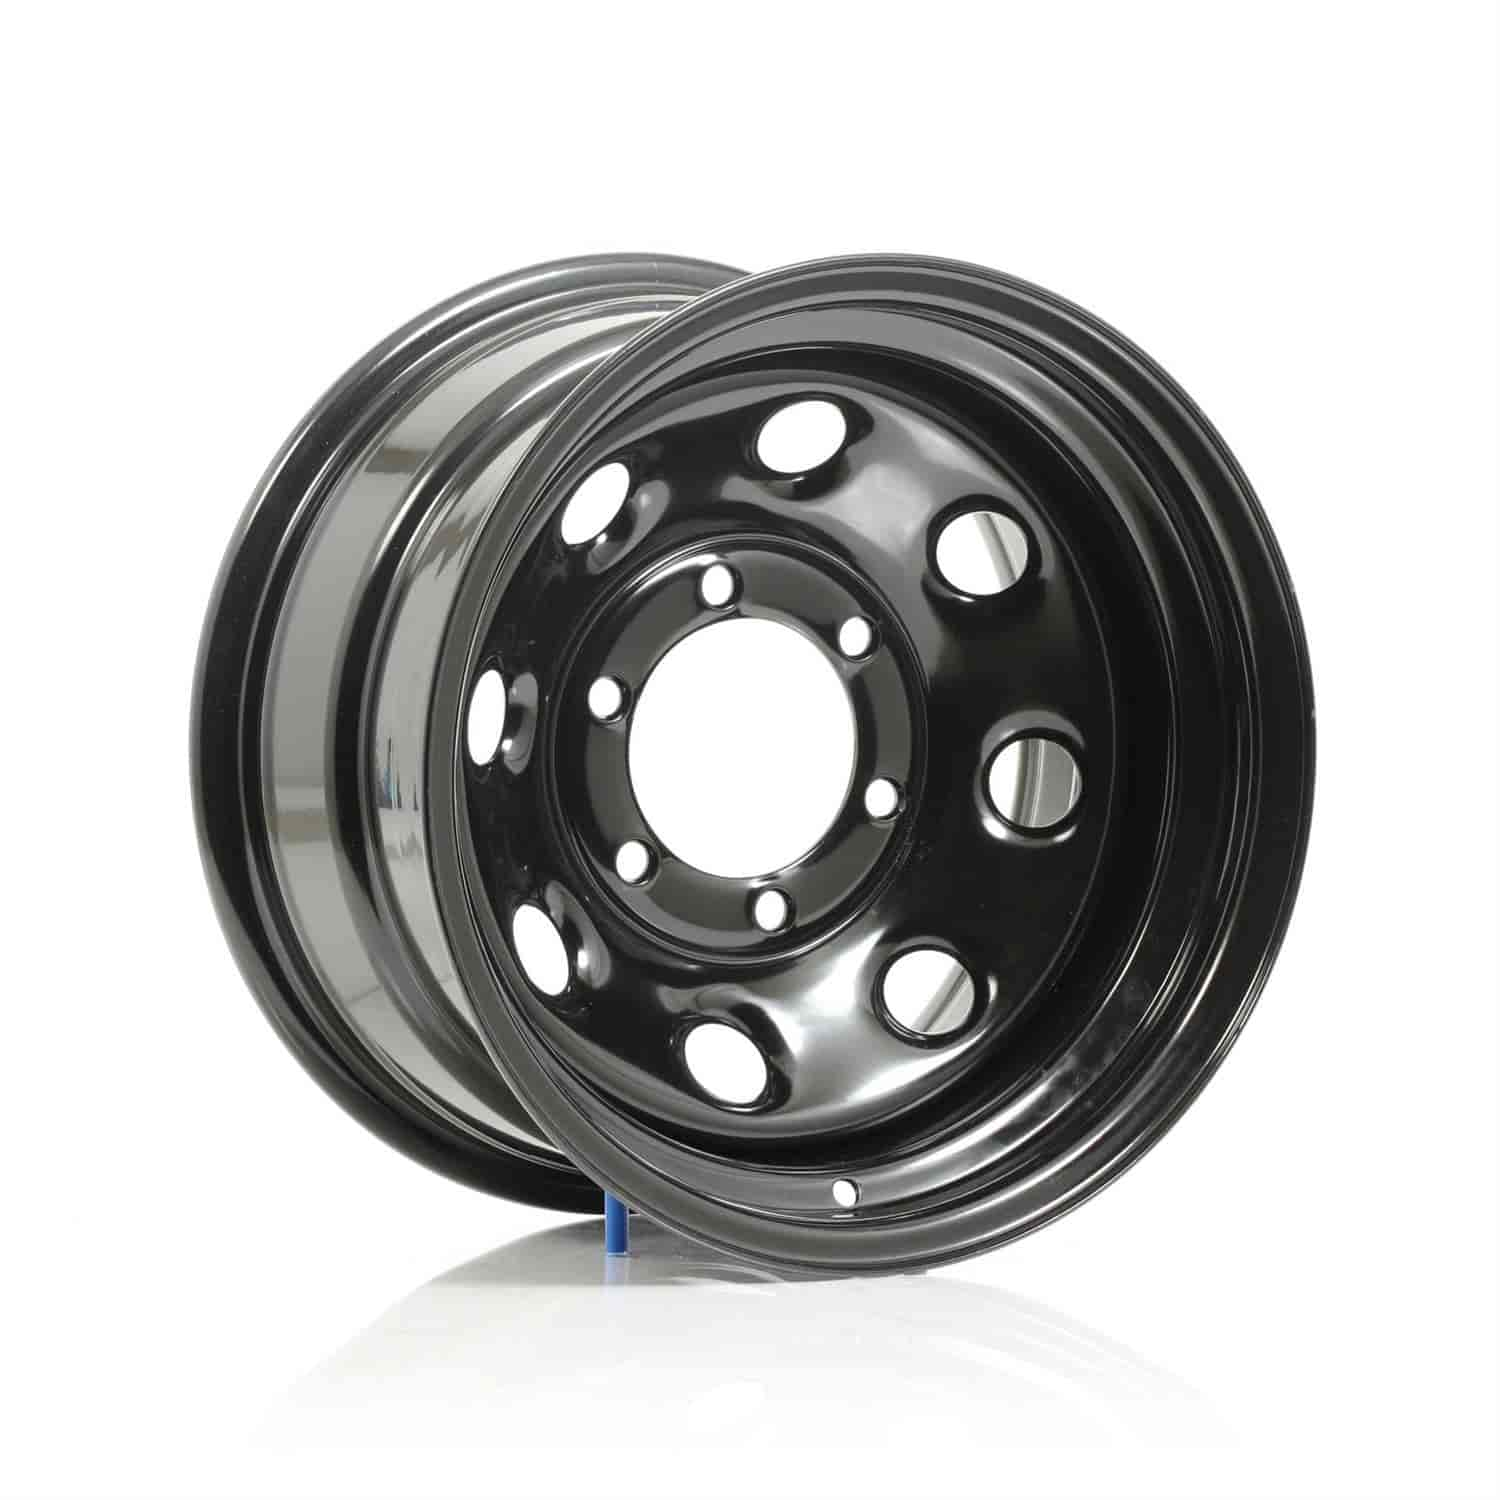 Cragar 3975860 - Cragar Black Soft 8 Wheels